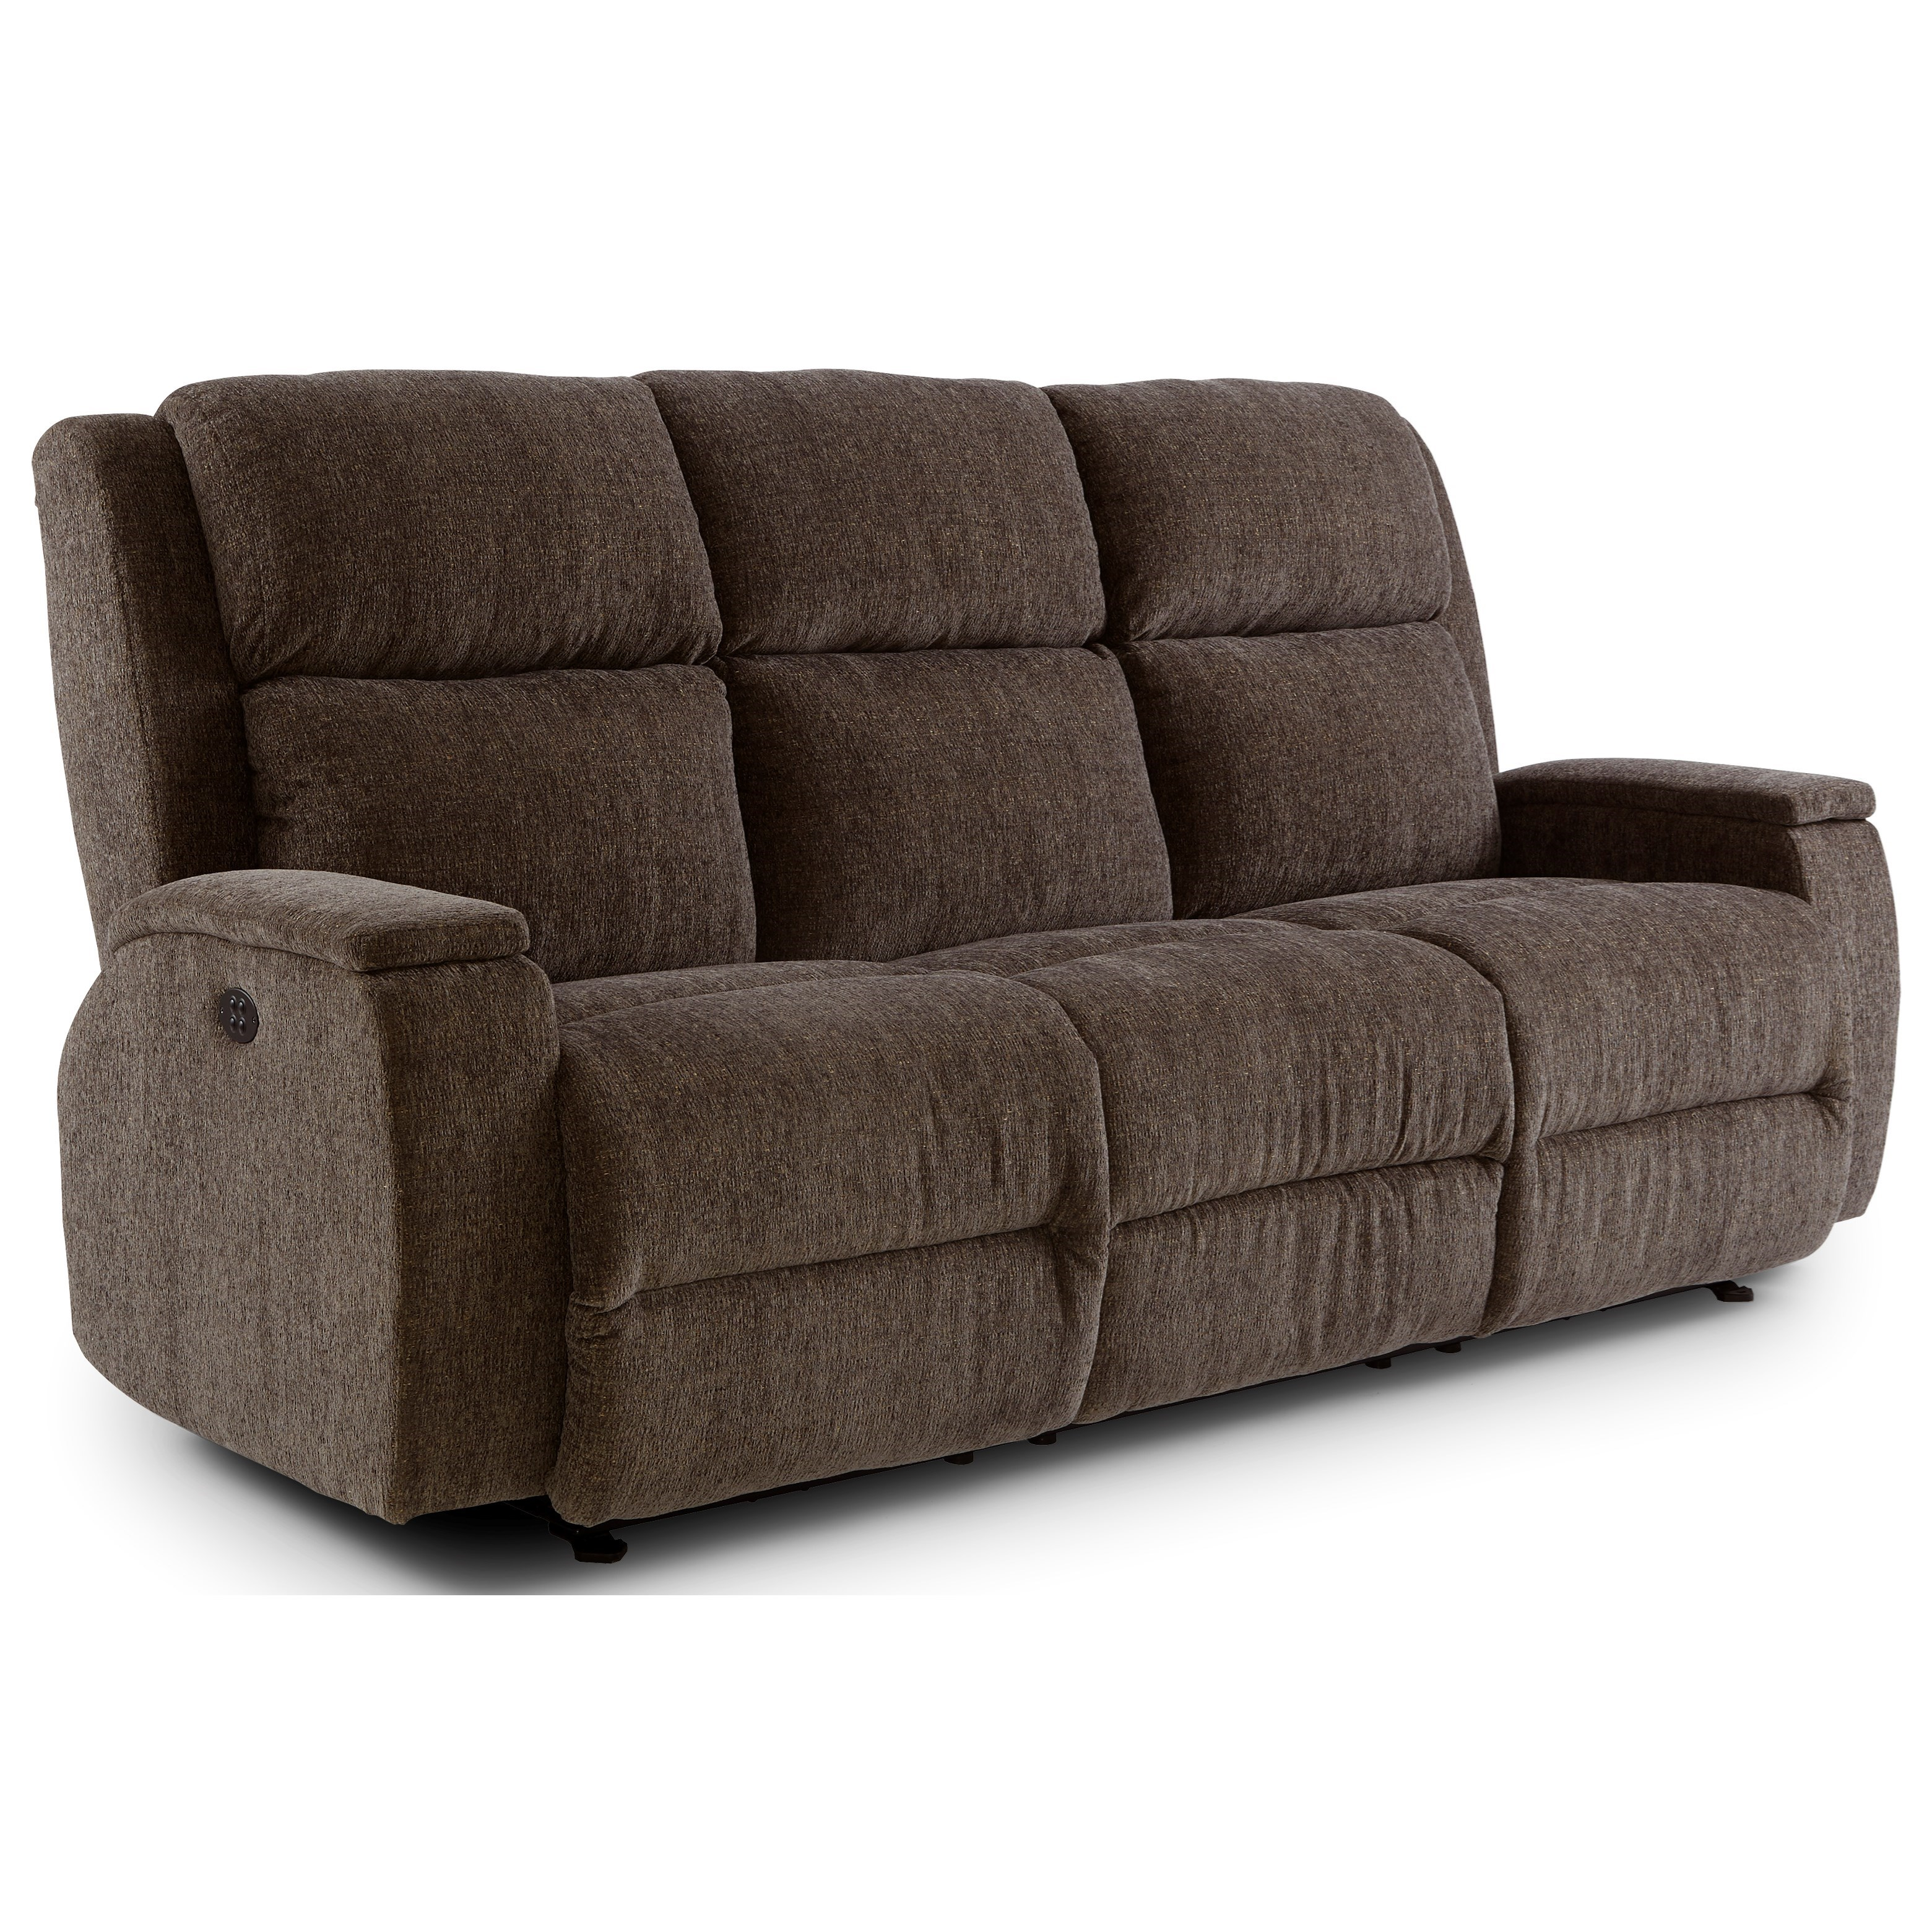 Colton Power Walhugger Recl Sofa w/ Pwr Headrest by Best Home Furnishings at Lapeer Furniture & Mattress Center